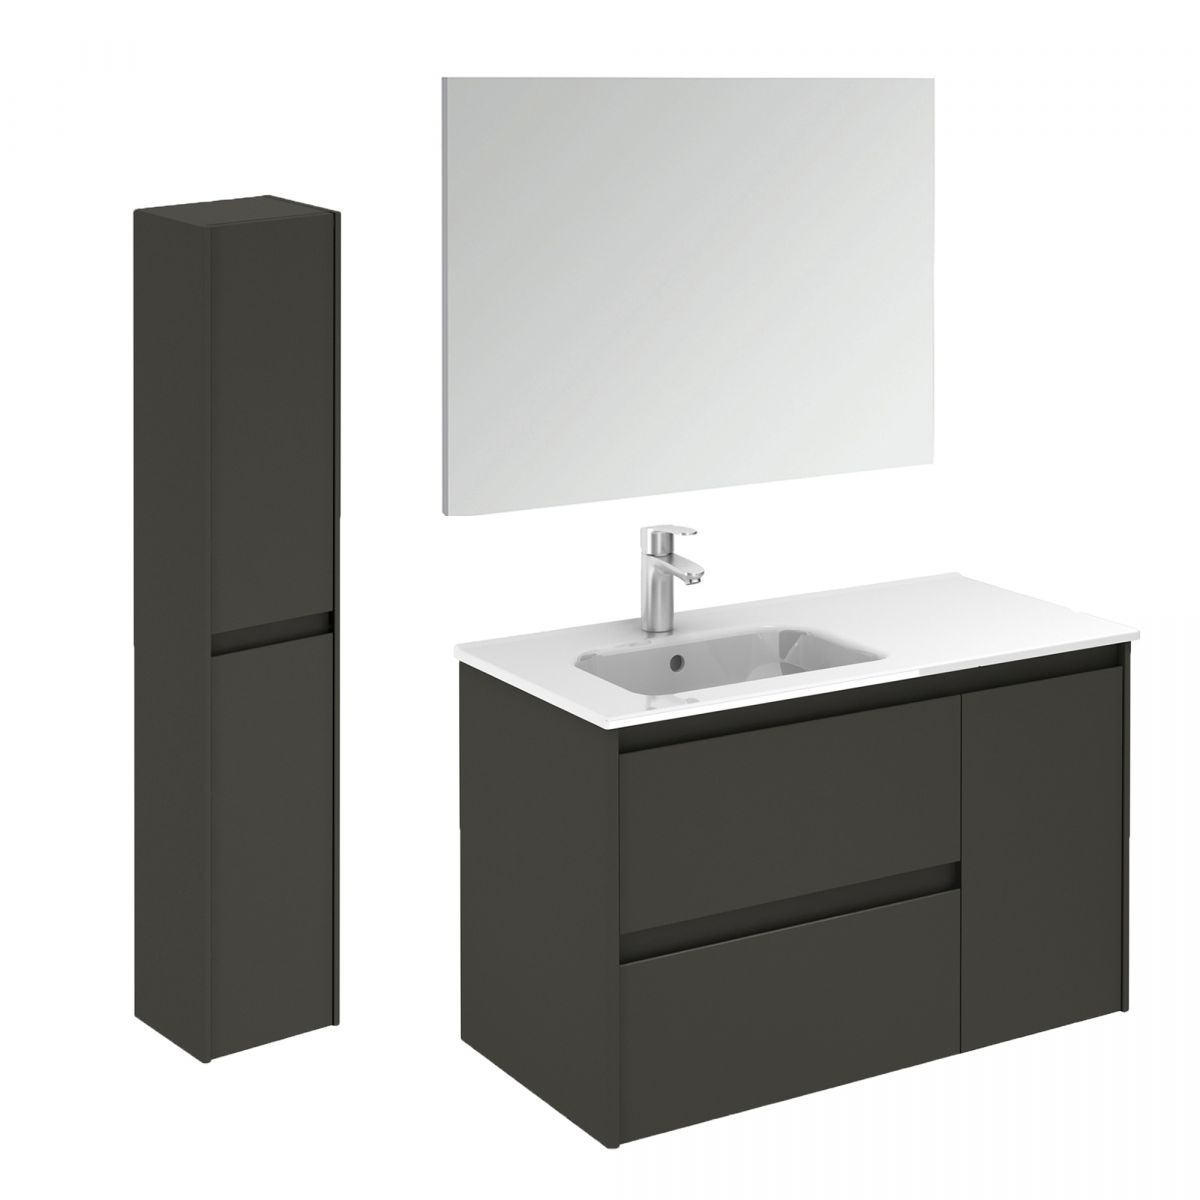 Ws Bath Collections Ambra 90 Pack 2 Wall Mounted Bathroom Vanity With Column And Mirror Modo Bath